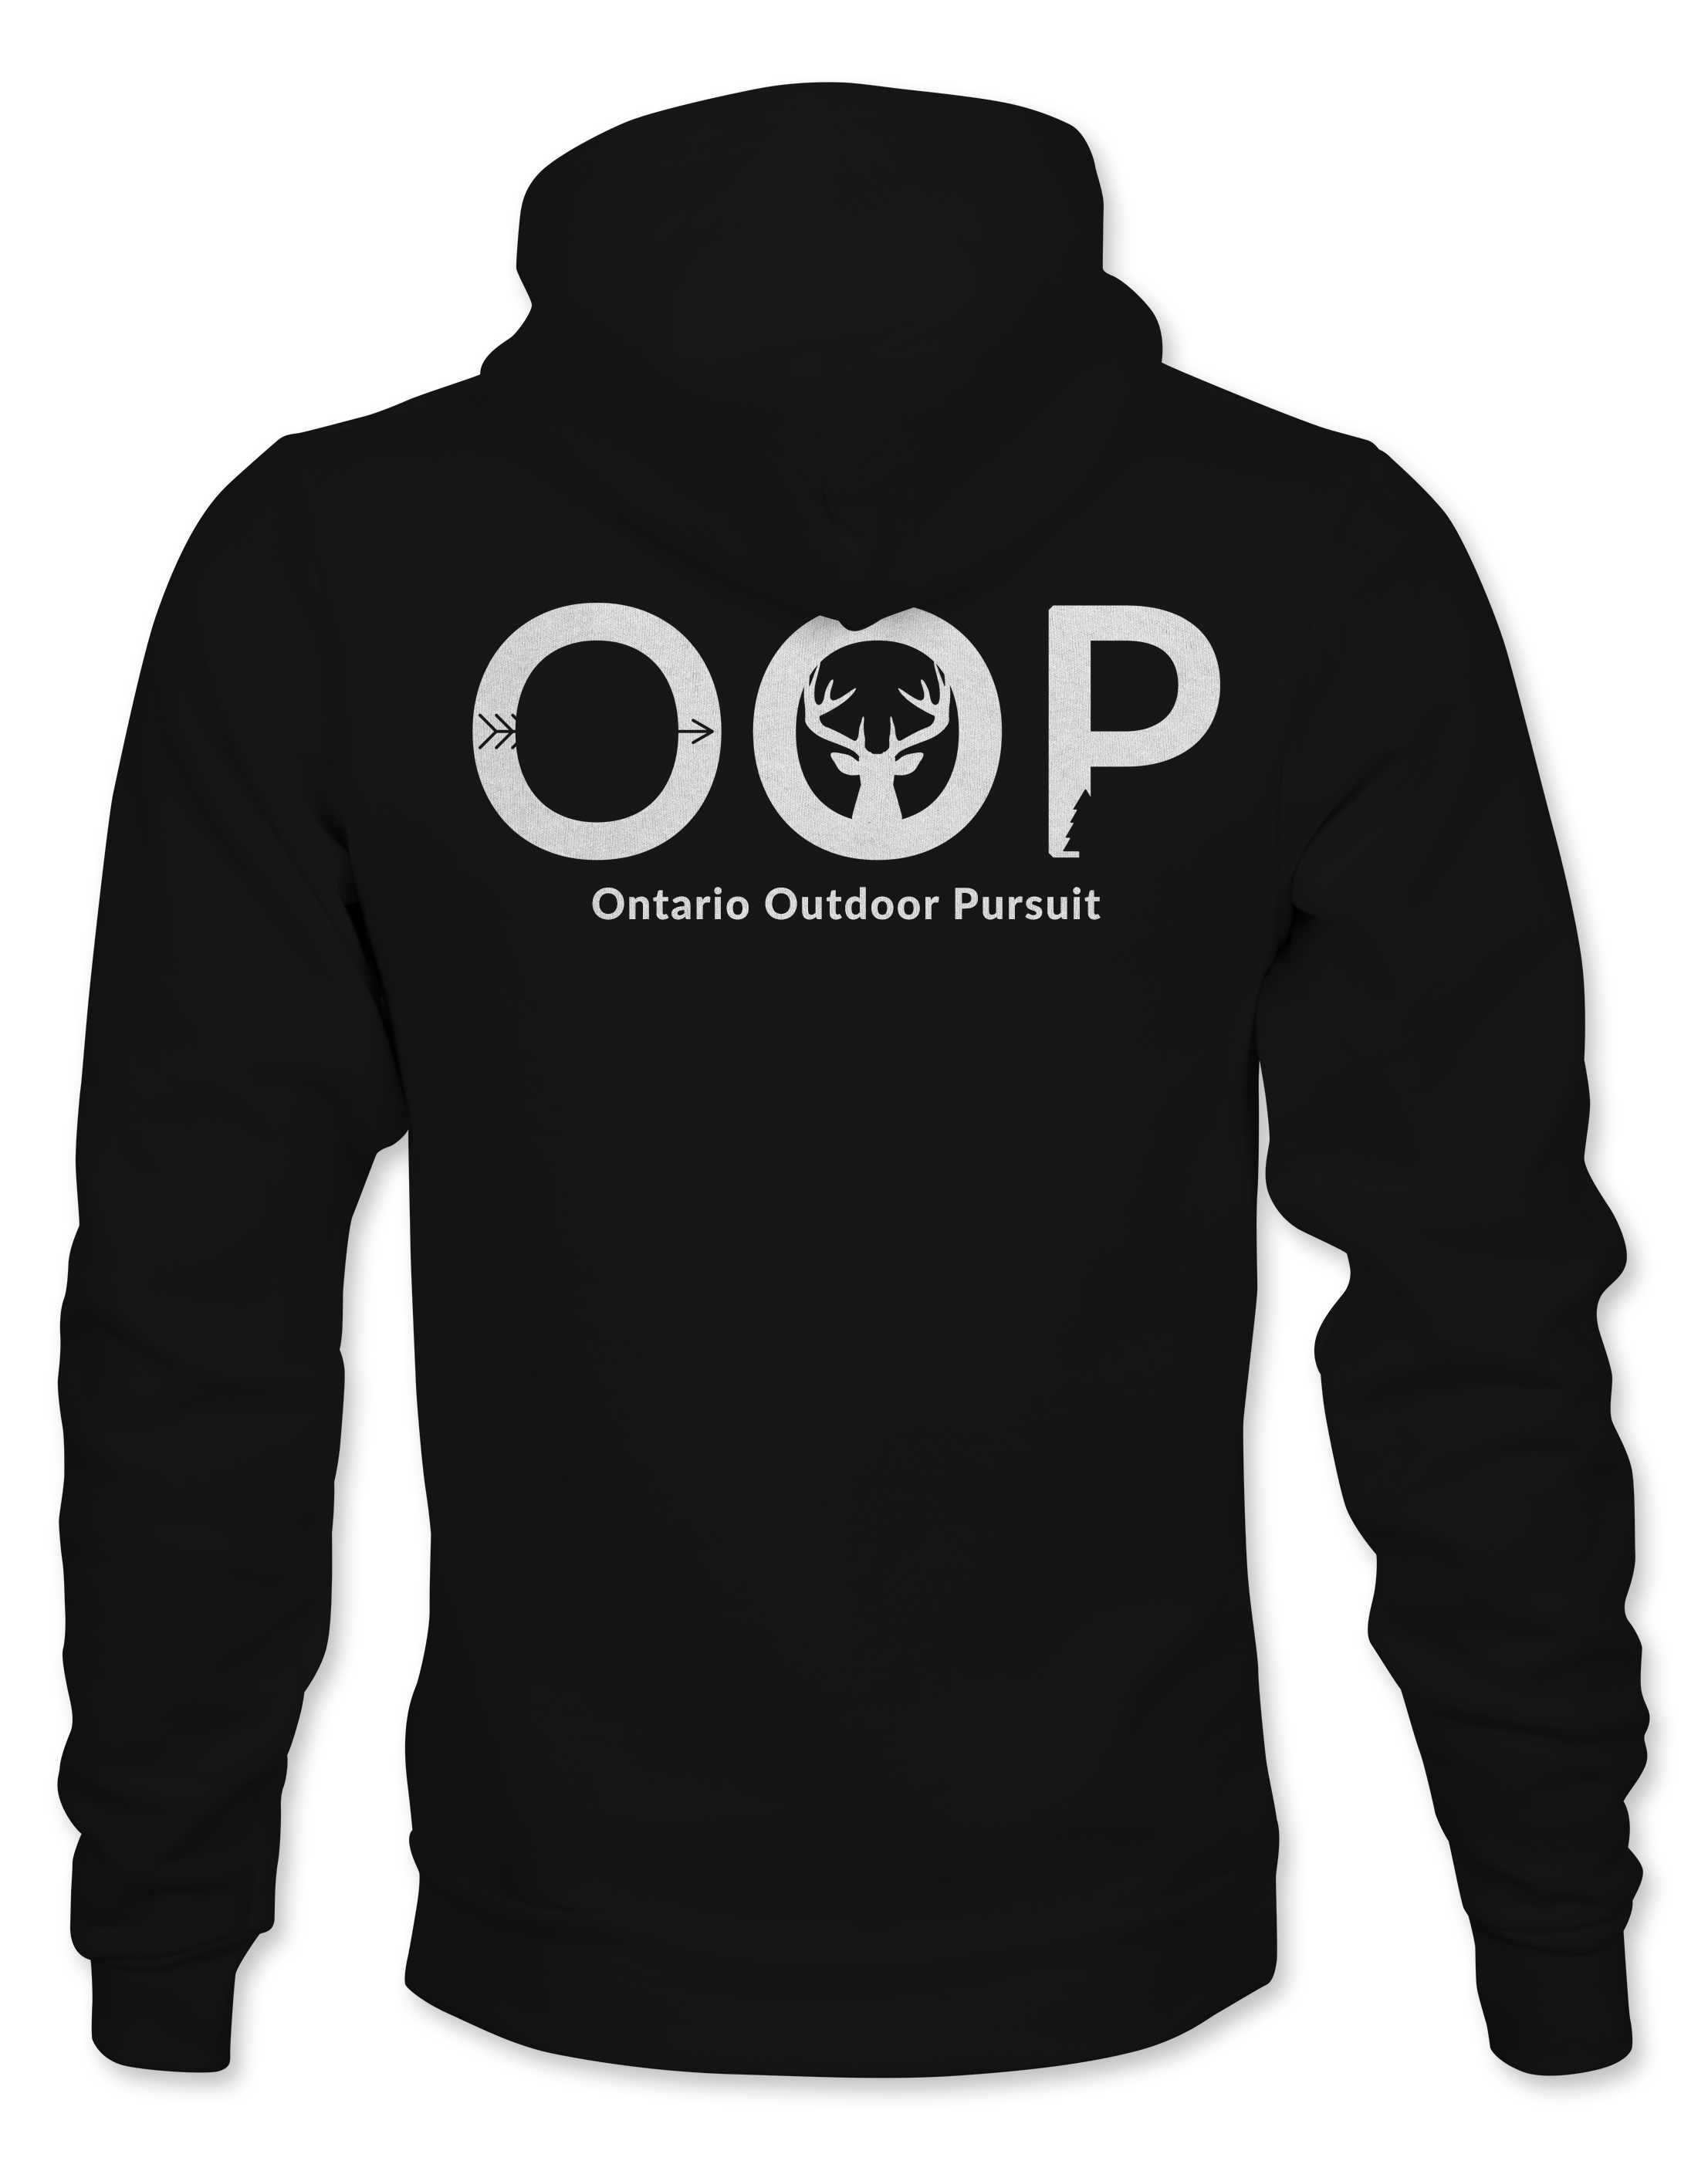 Ontario Outdoor Pursuit Hoodie